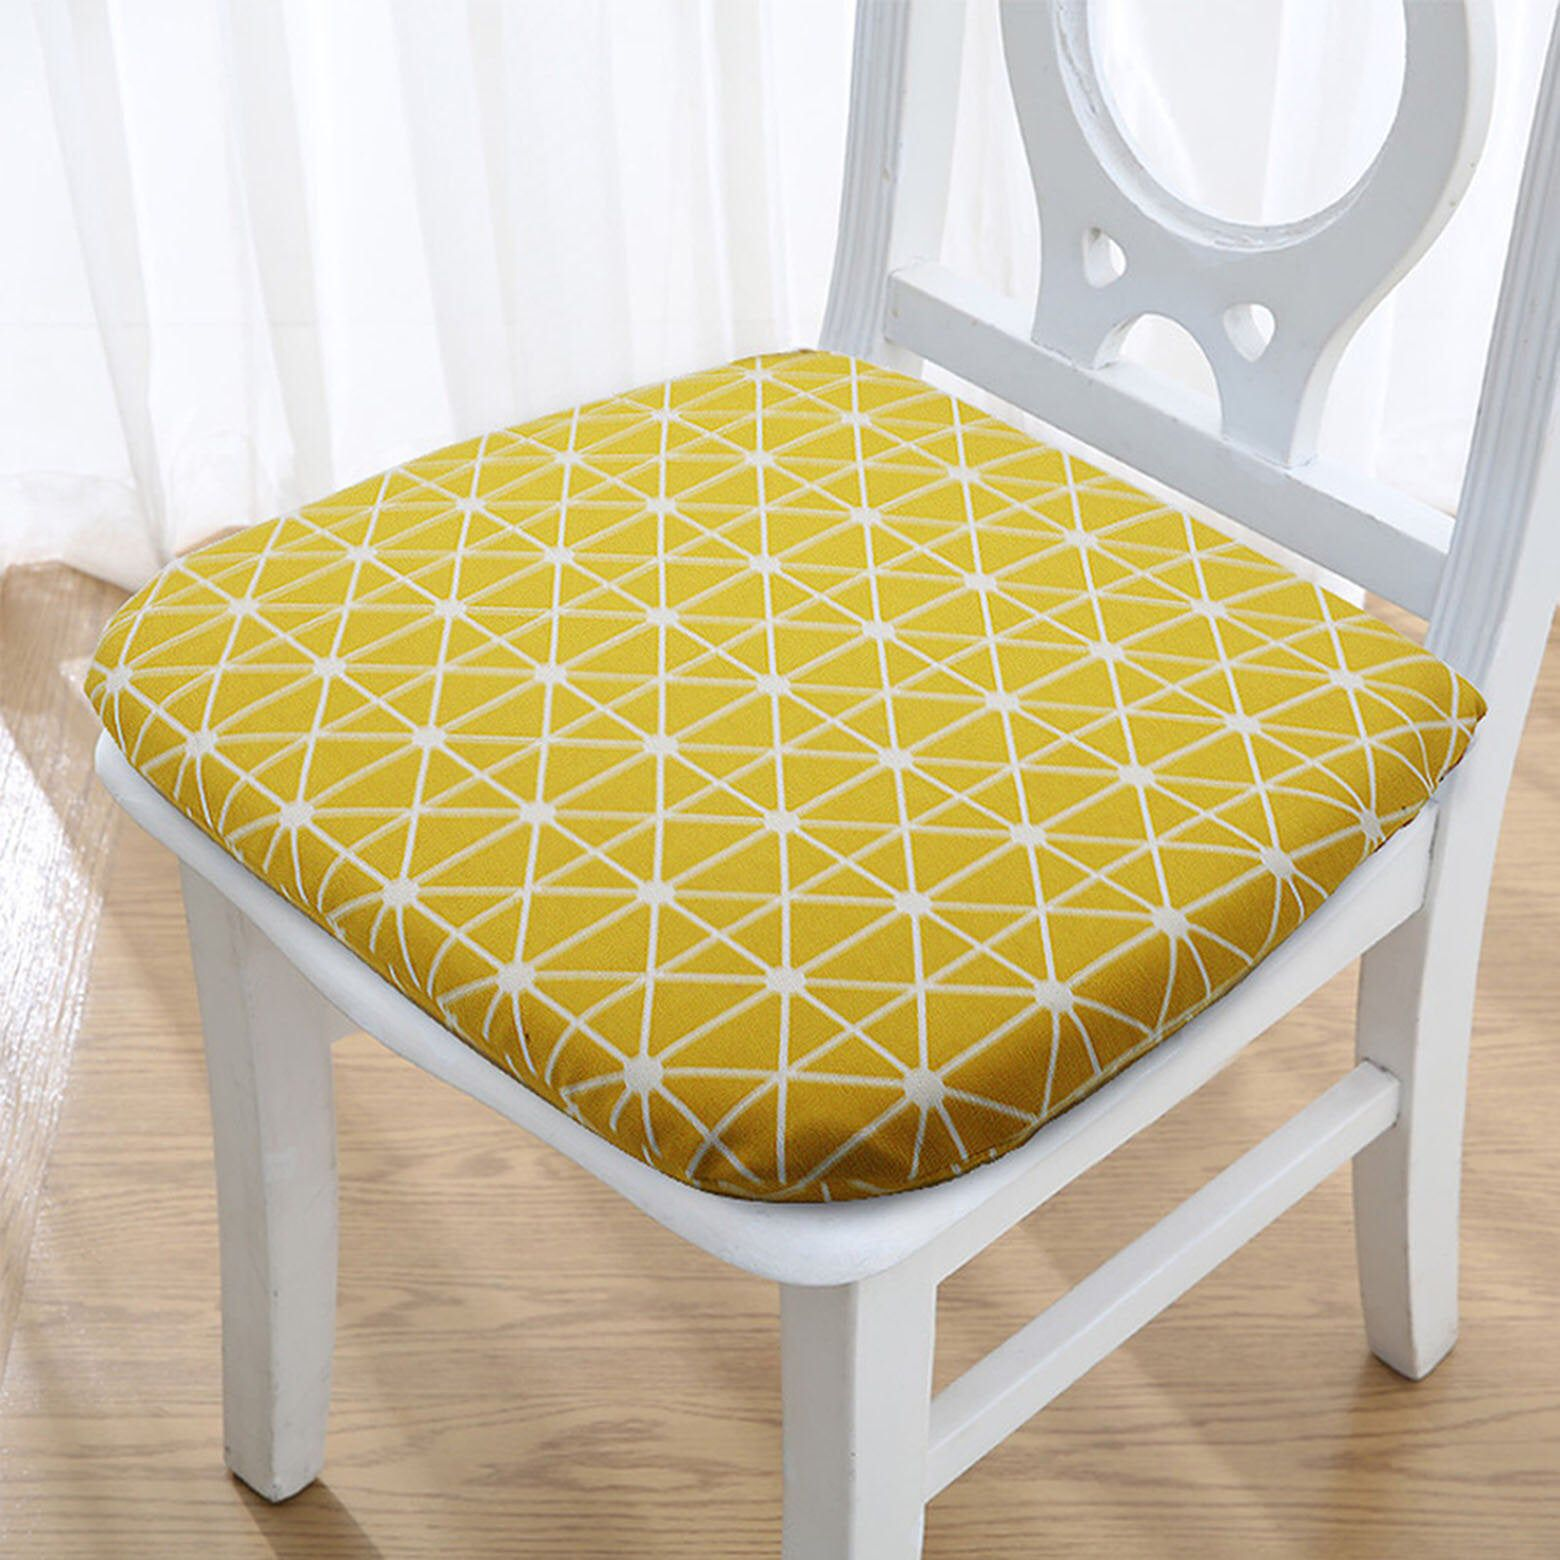 Memory Foam Dining Chair Cushion with Ties, Indoor Kitchen